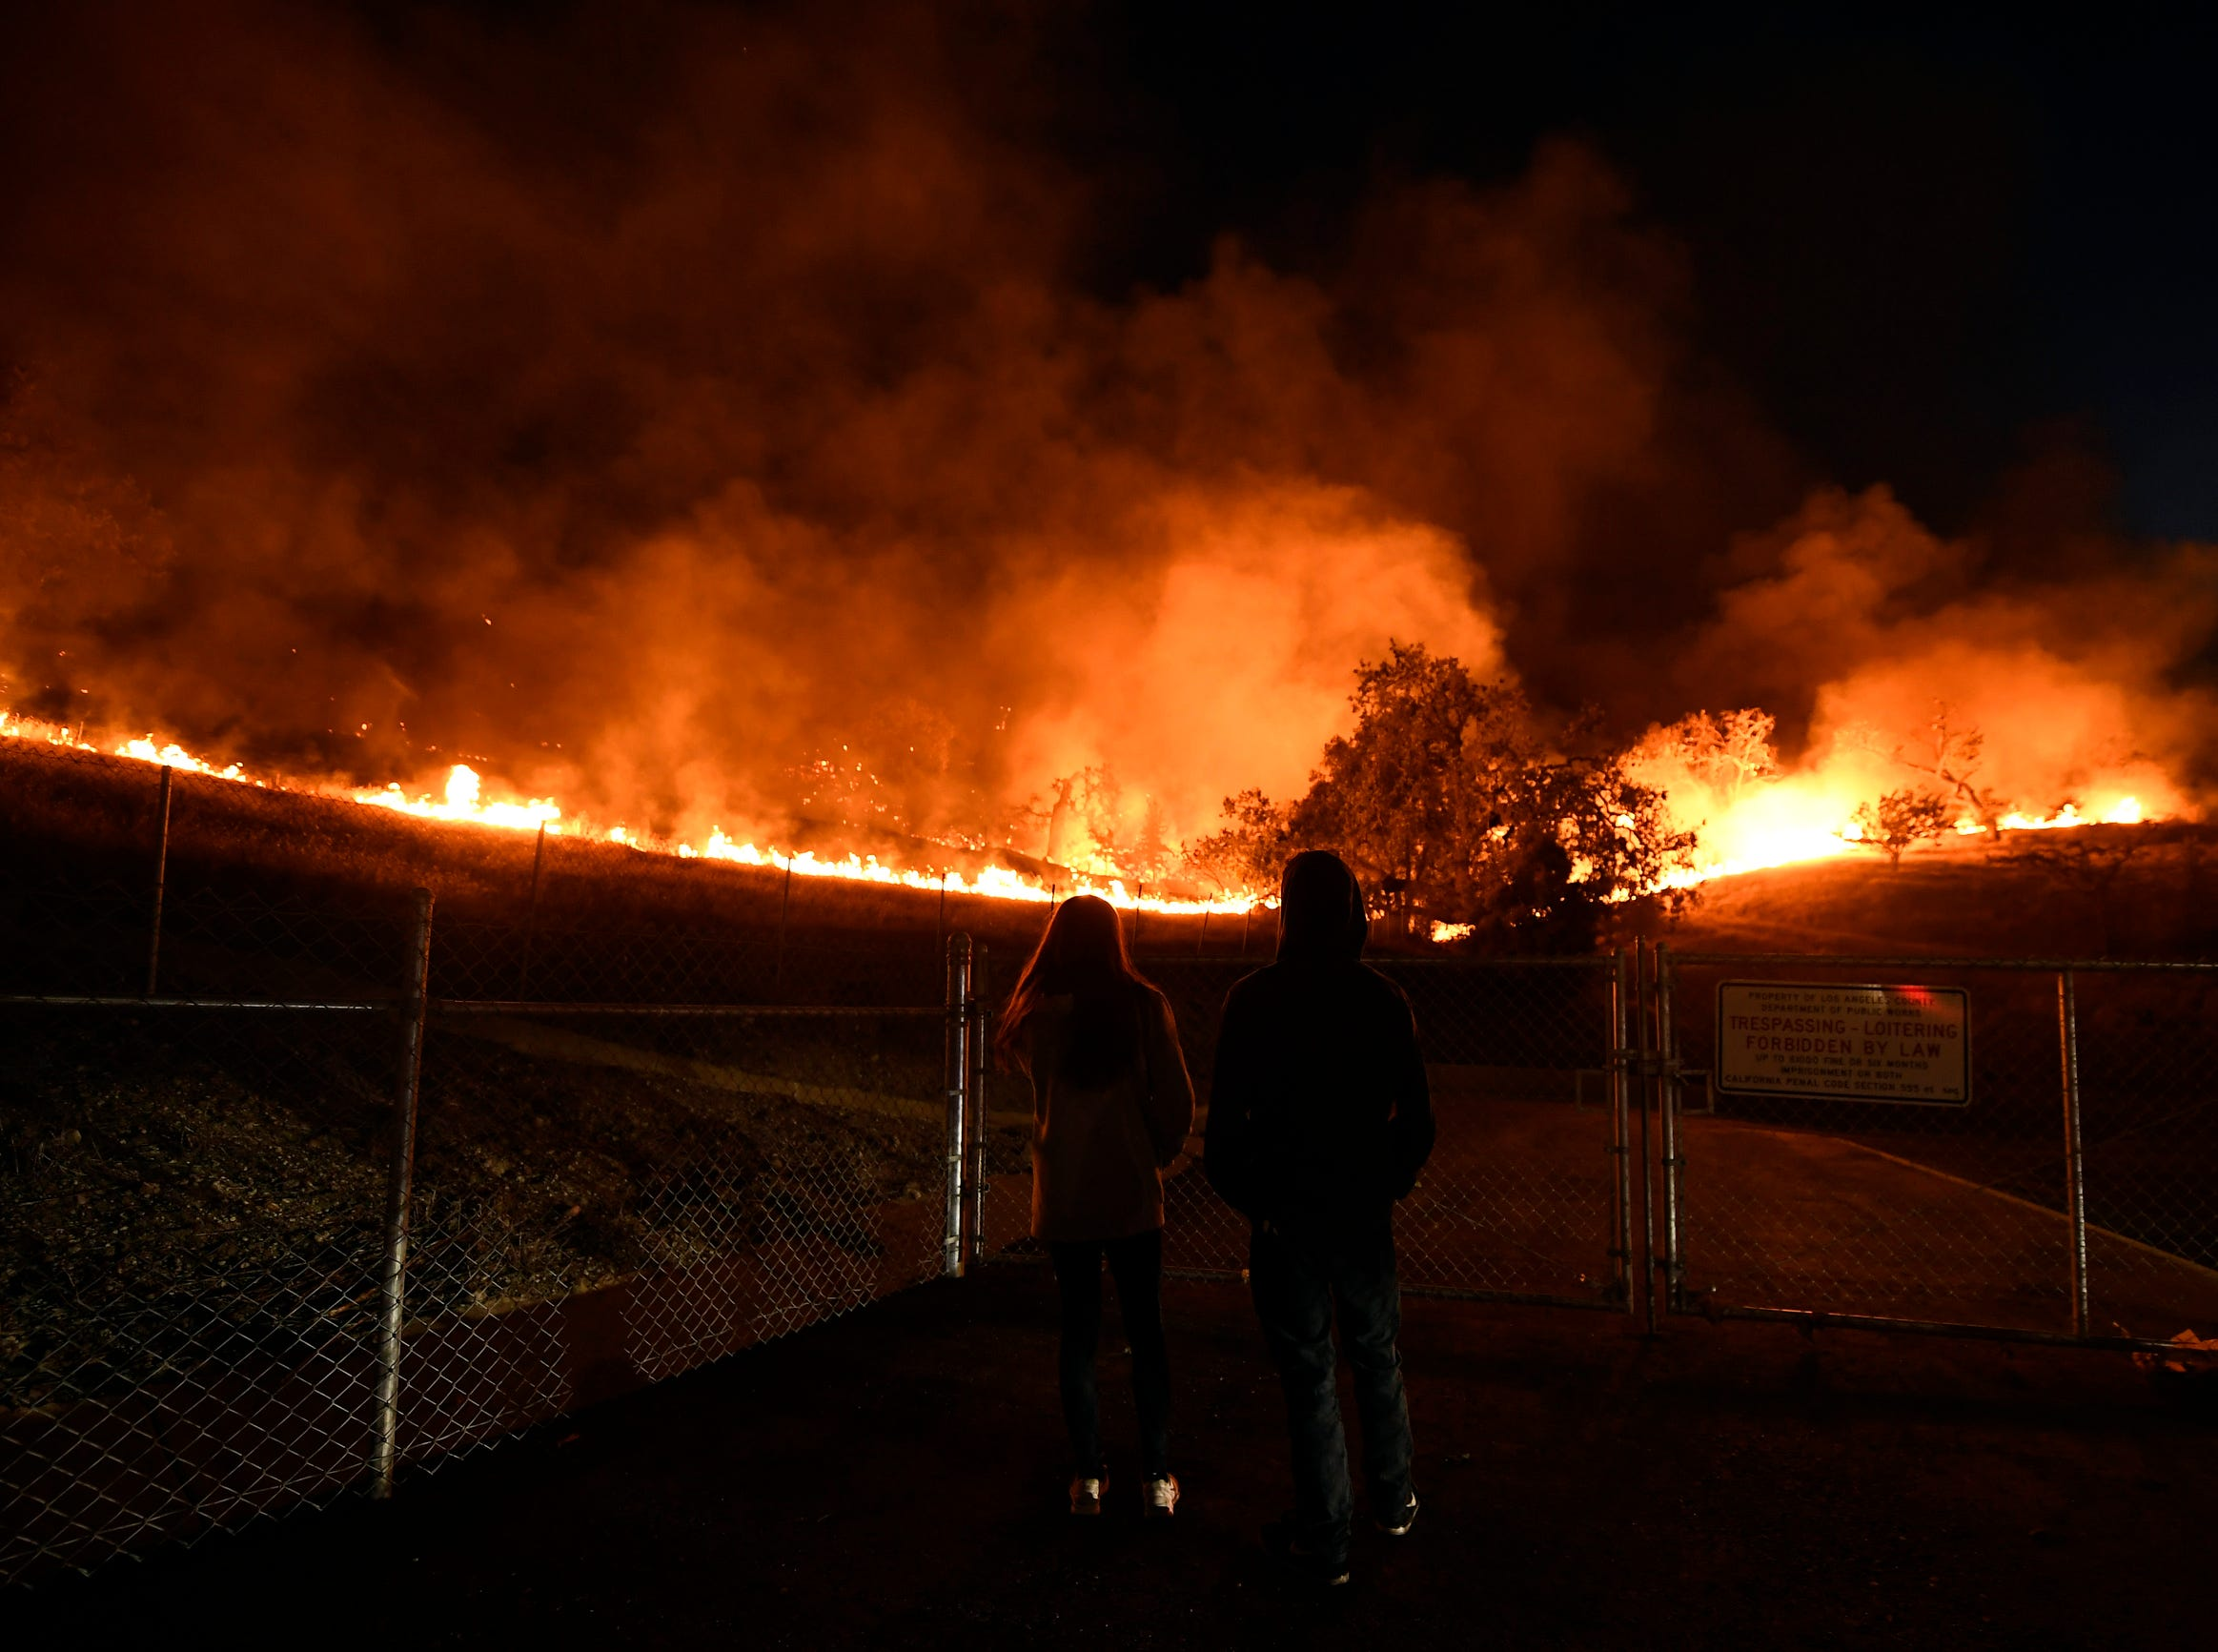 Residents take a look at the Woolsey Fire burning brush and trees in Agoura Hills, Calif. About 75,000 homes have been evacuated in Los Angeles and Ventura counties due to two fires in the region.